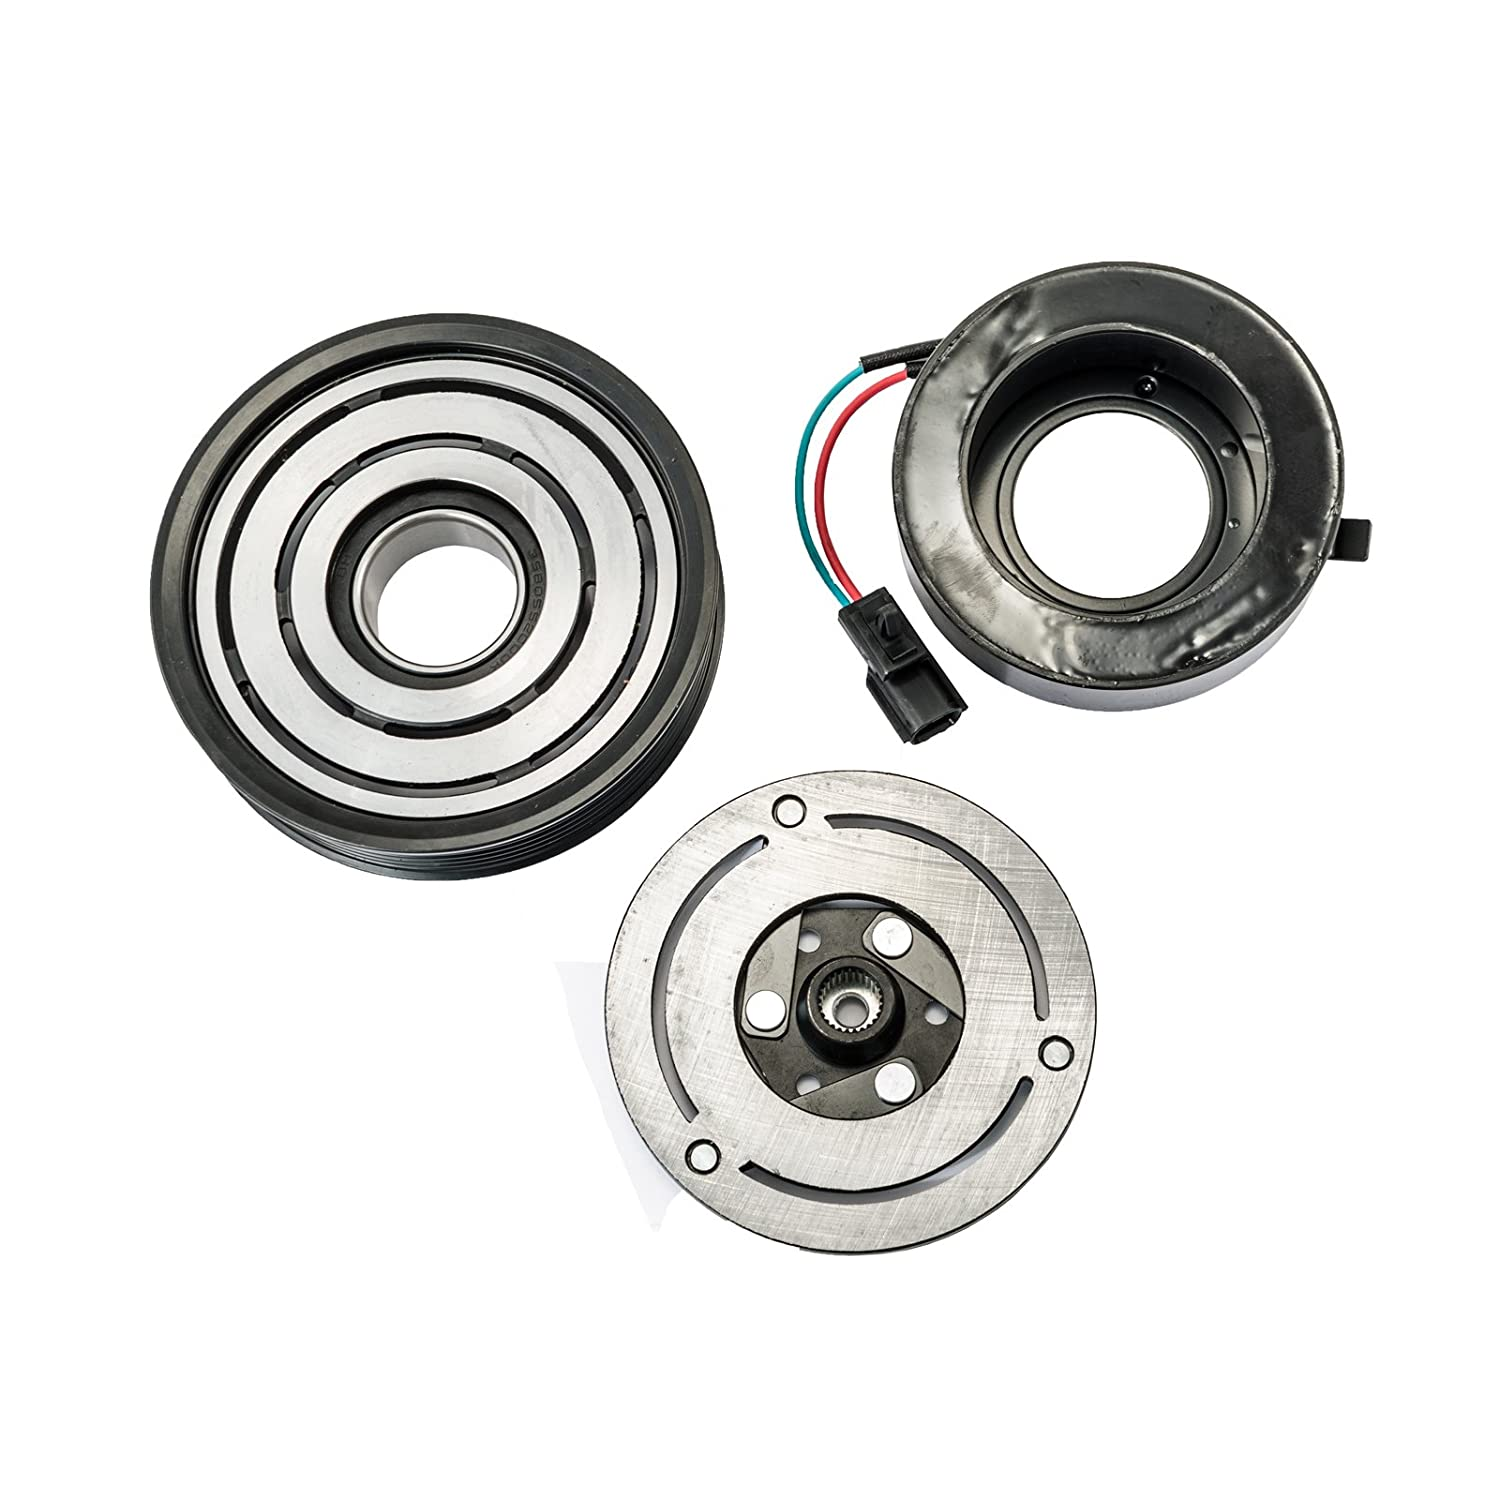 HexAutoparts A/C AC Compressor Clutch Repair Kit - Front Plate Pulley Coil Bearing for Nissan Altima V6 3.5L 2007-2012 CL007